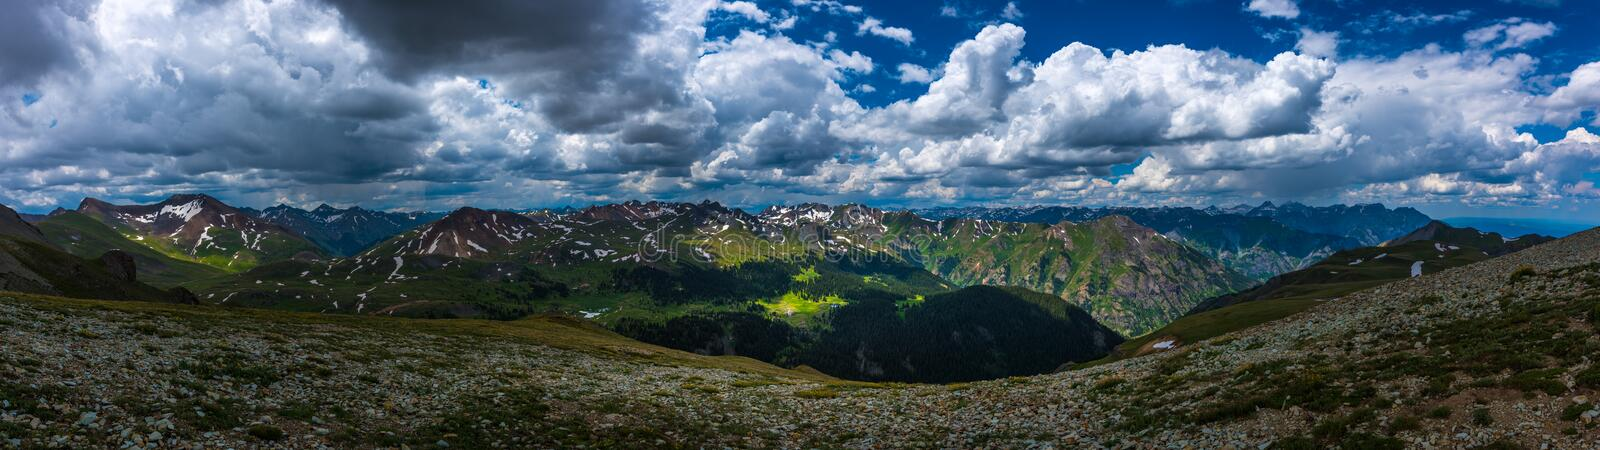 Engineer Pass Colorado view from the top, panoramic shot stock photography